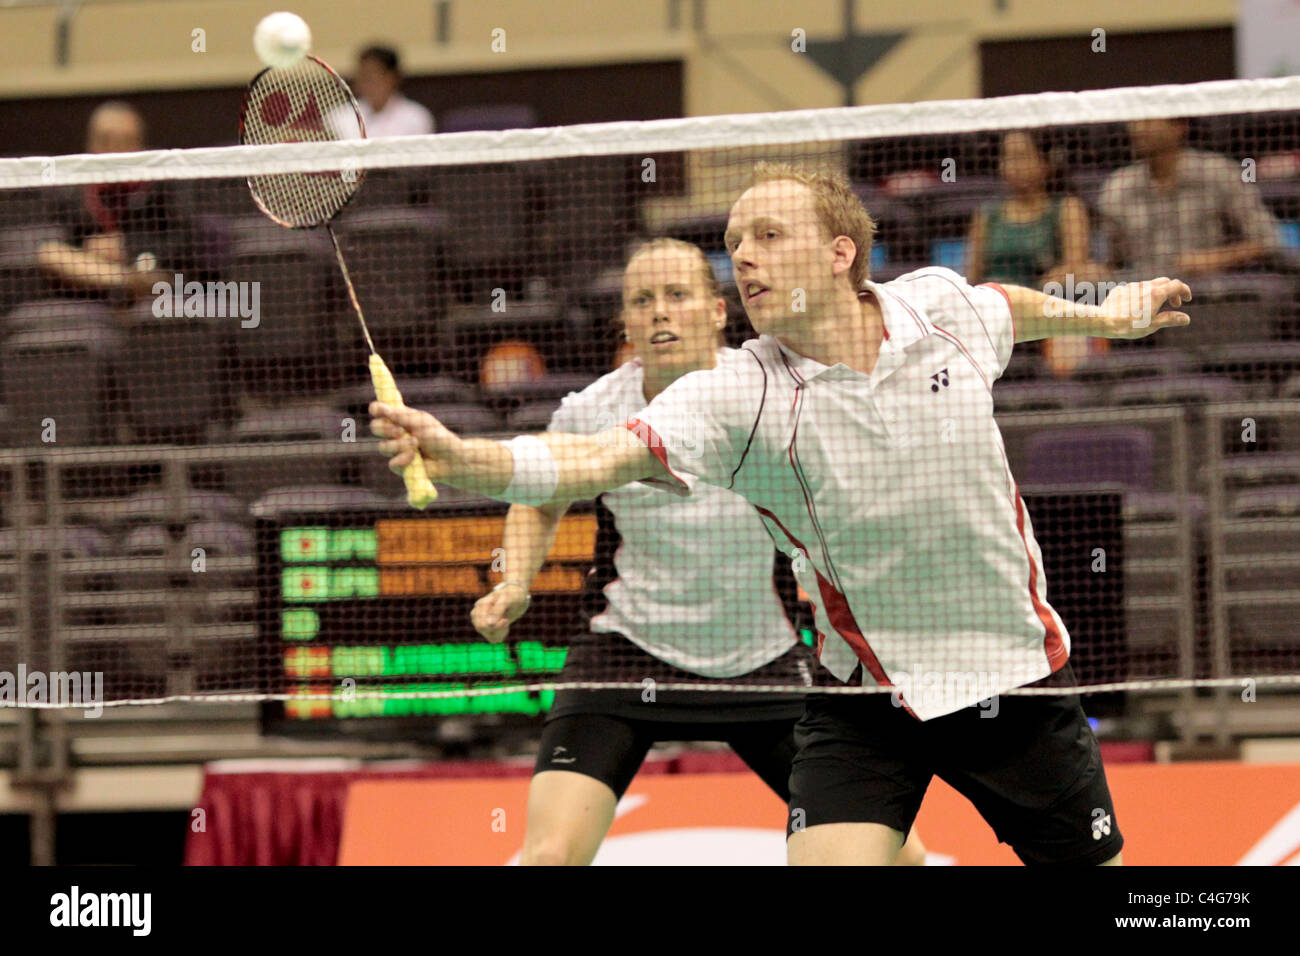 Thomas Laybourn and Kamilla Rytter Juhl of Denmark during the